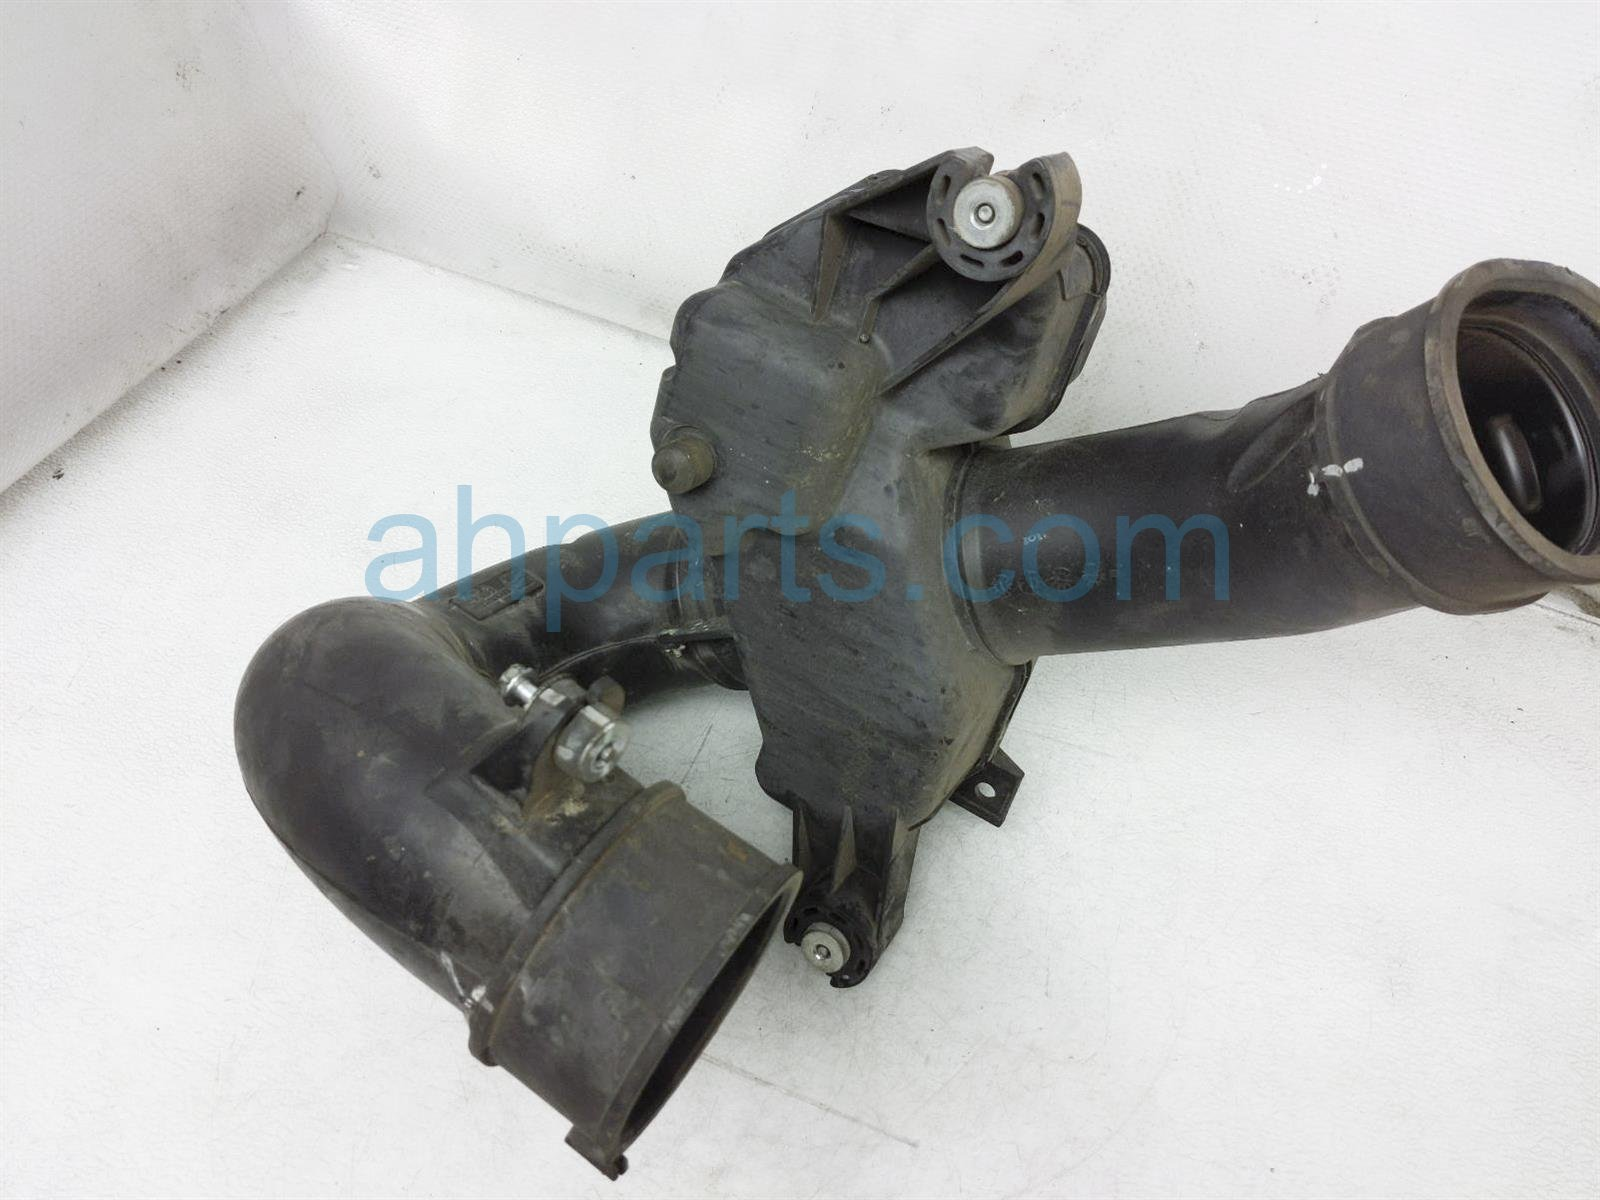 Sold 2007 Honda Accord Intake Air Cleaner Resonator Chamber Assy 17230 RCA A10 Replacement